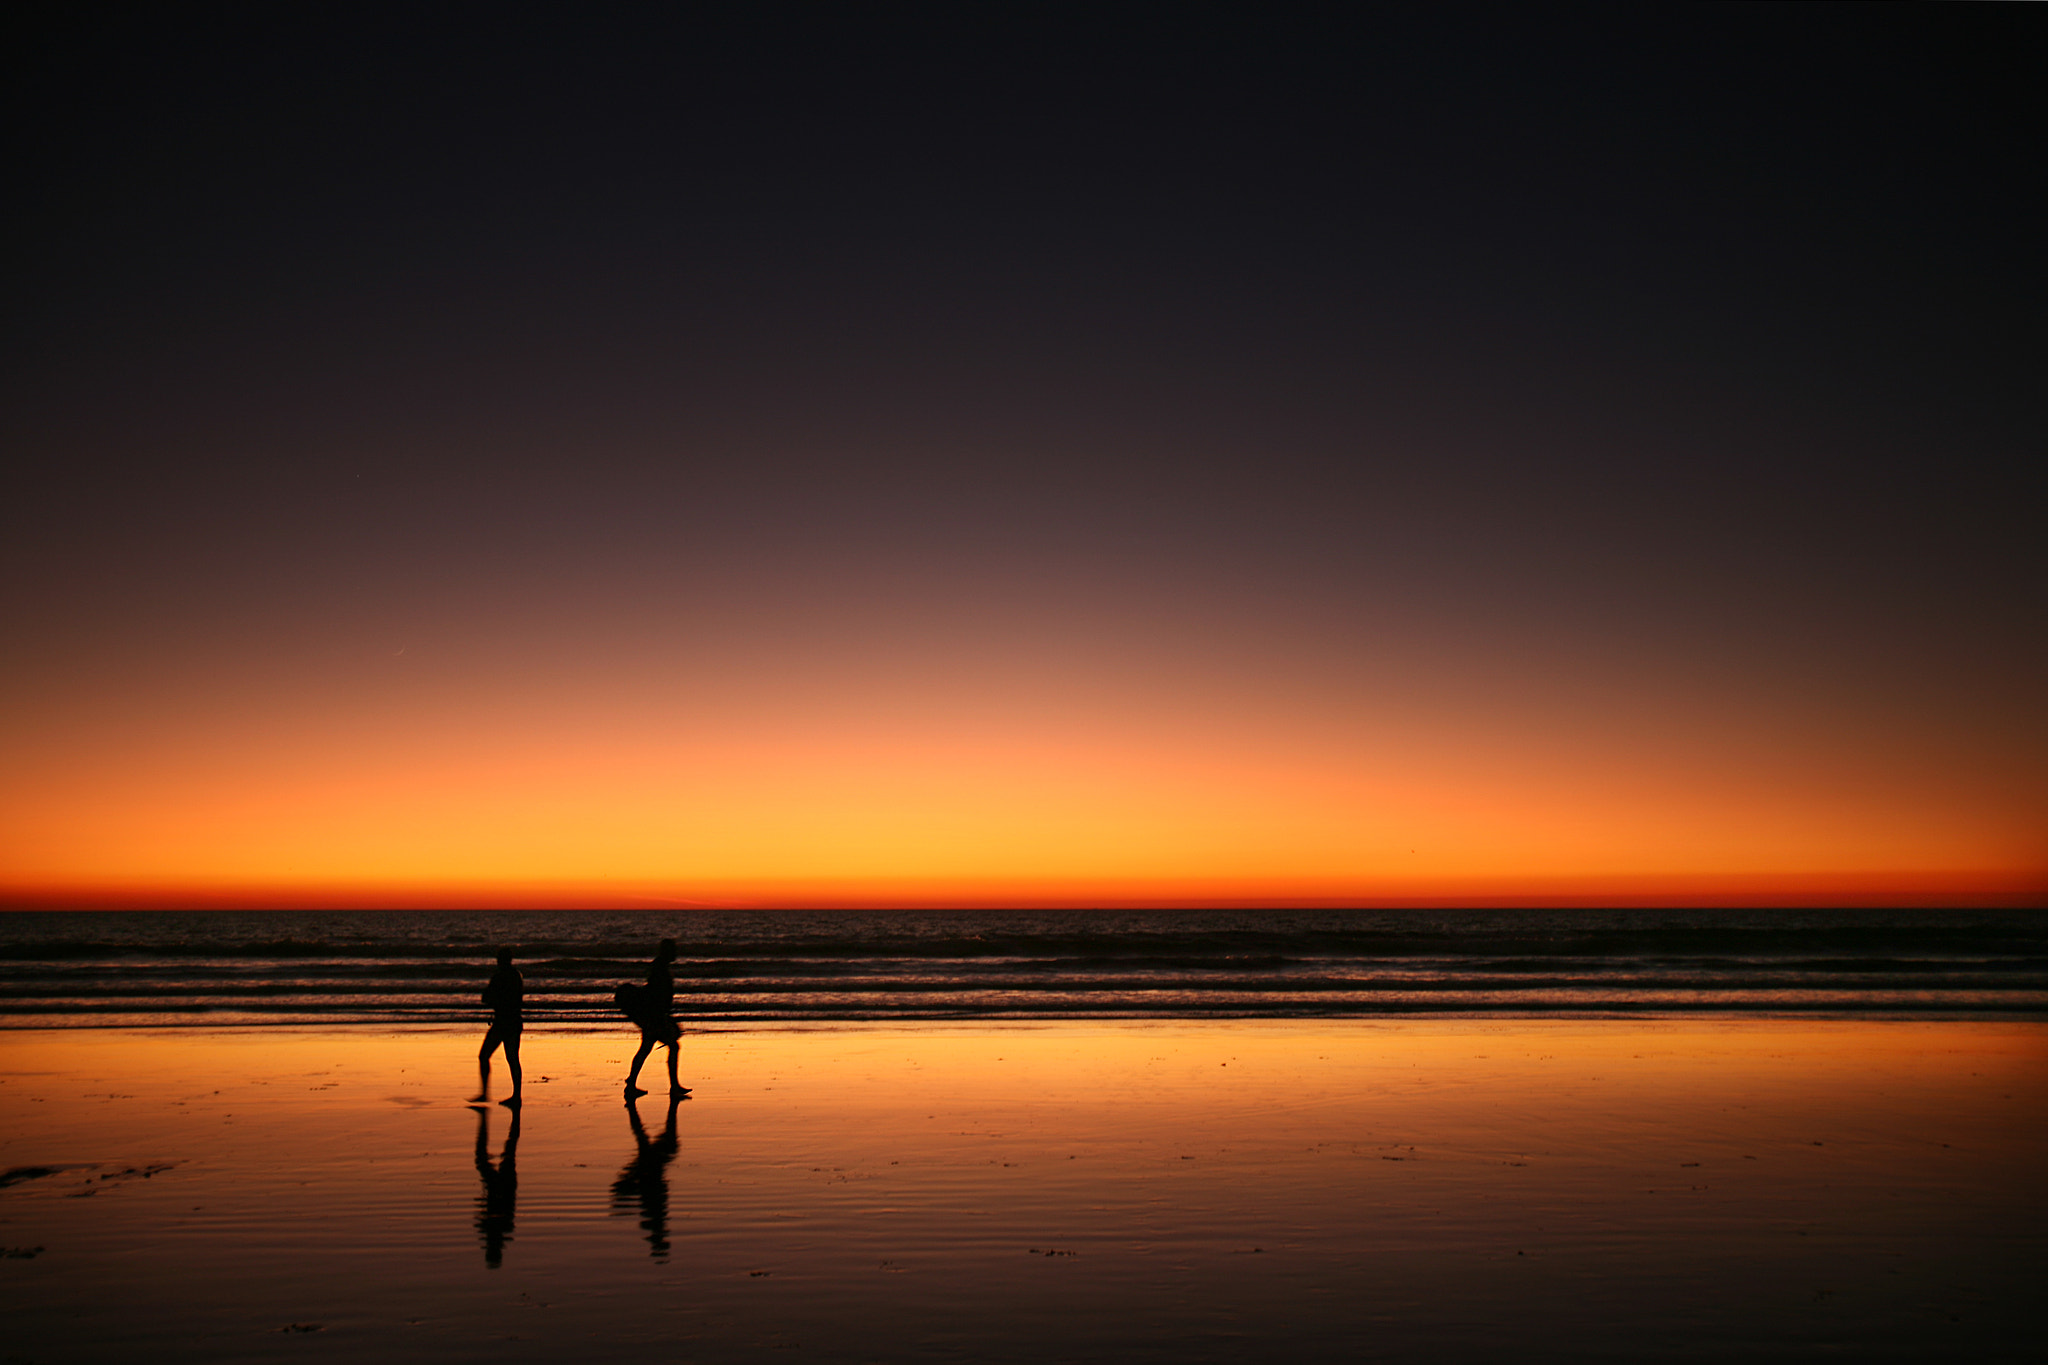 Photograph Final moments by Jason Windebank on 500px